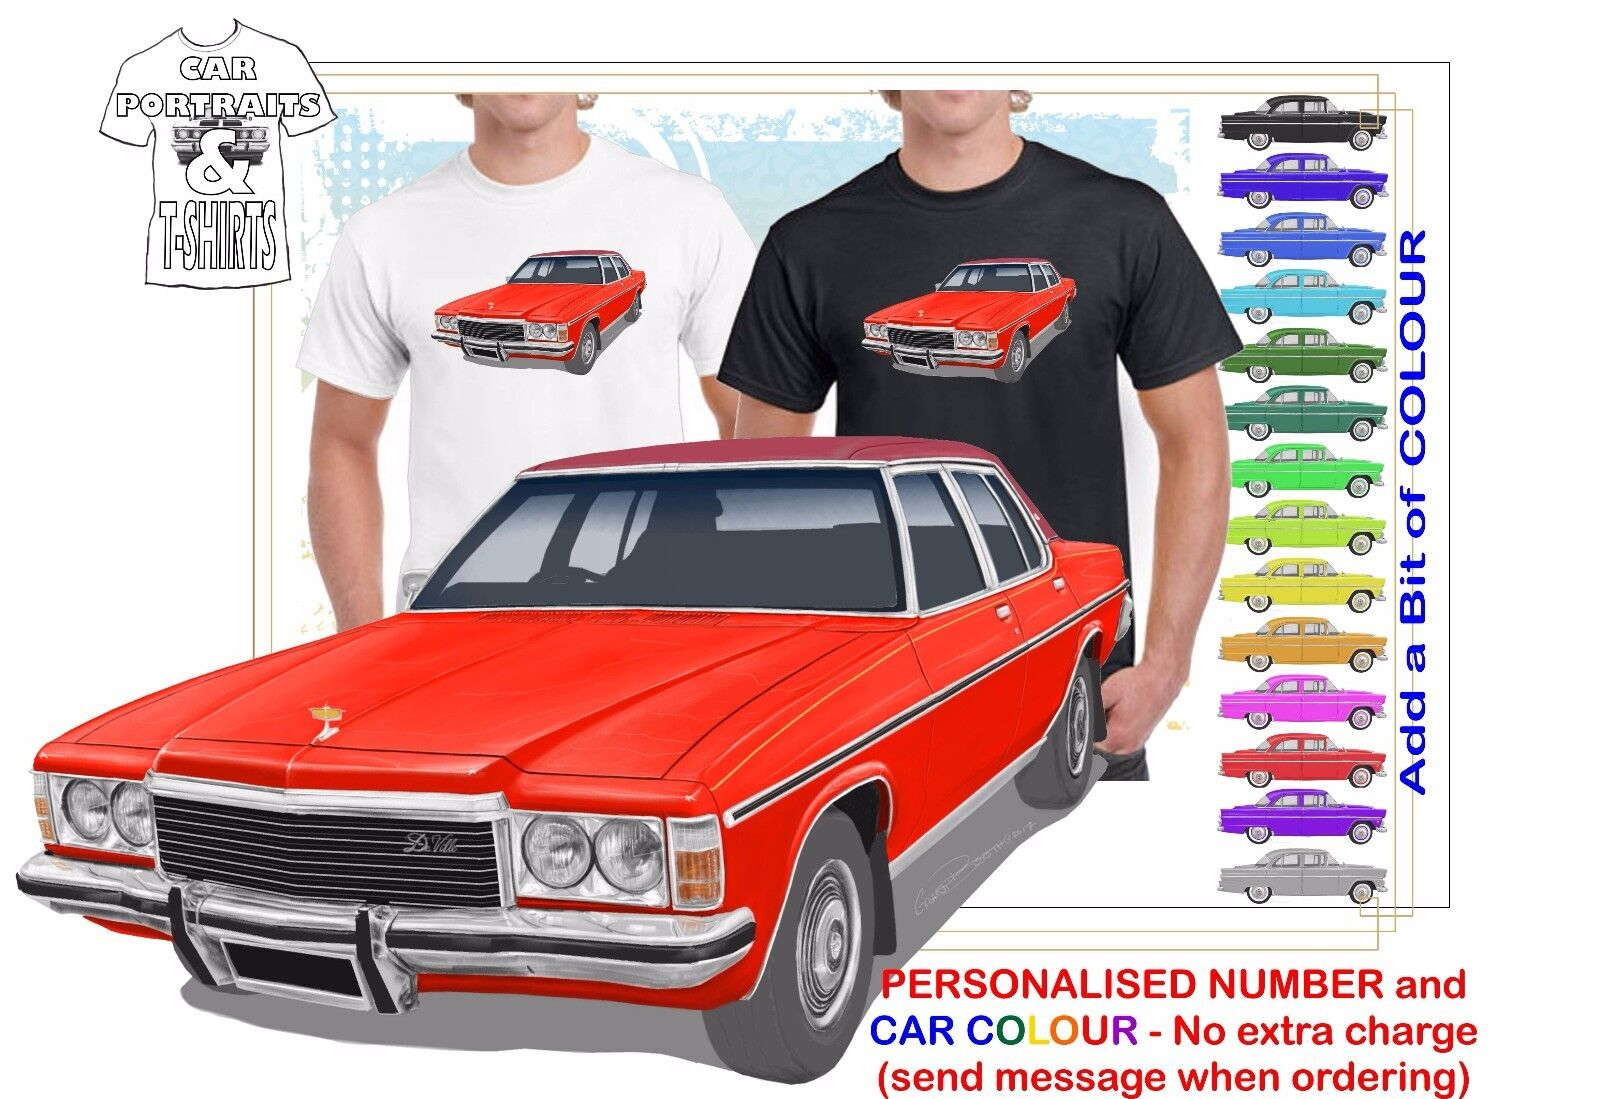 CLASSIC 77-80 STATESMAN DE VILLE ILLUSTRATED T-SHIRT MUSCLE RETRO SPORTS